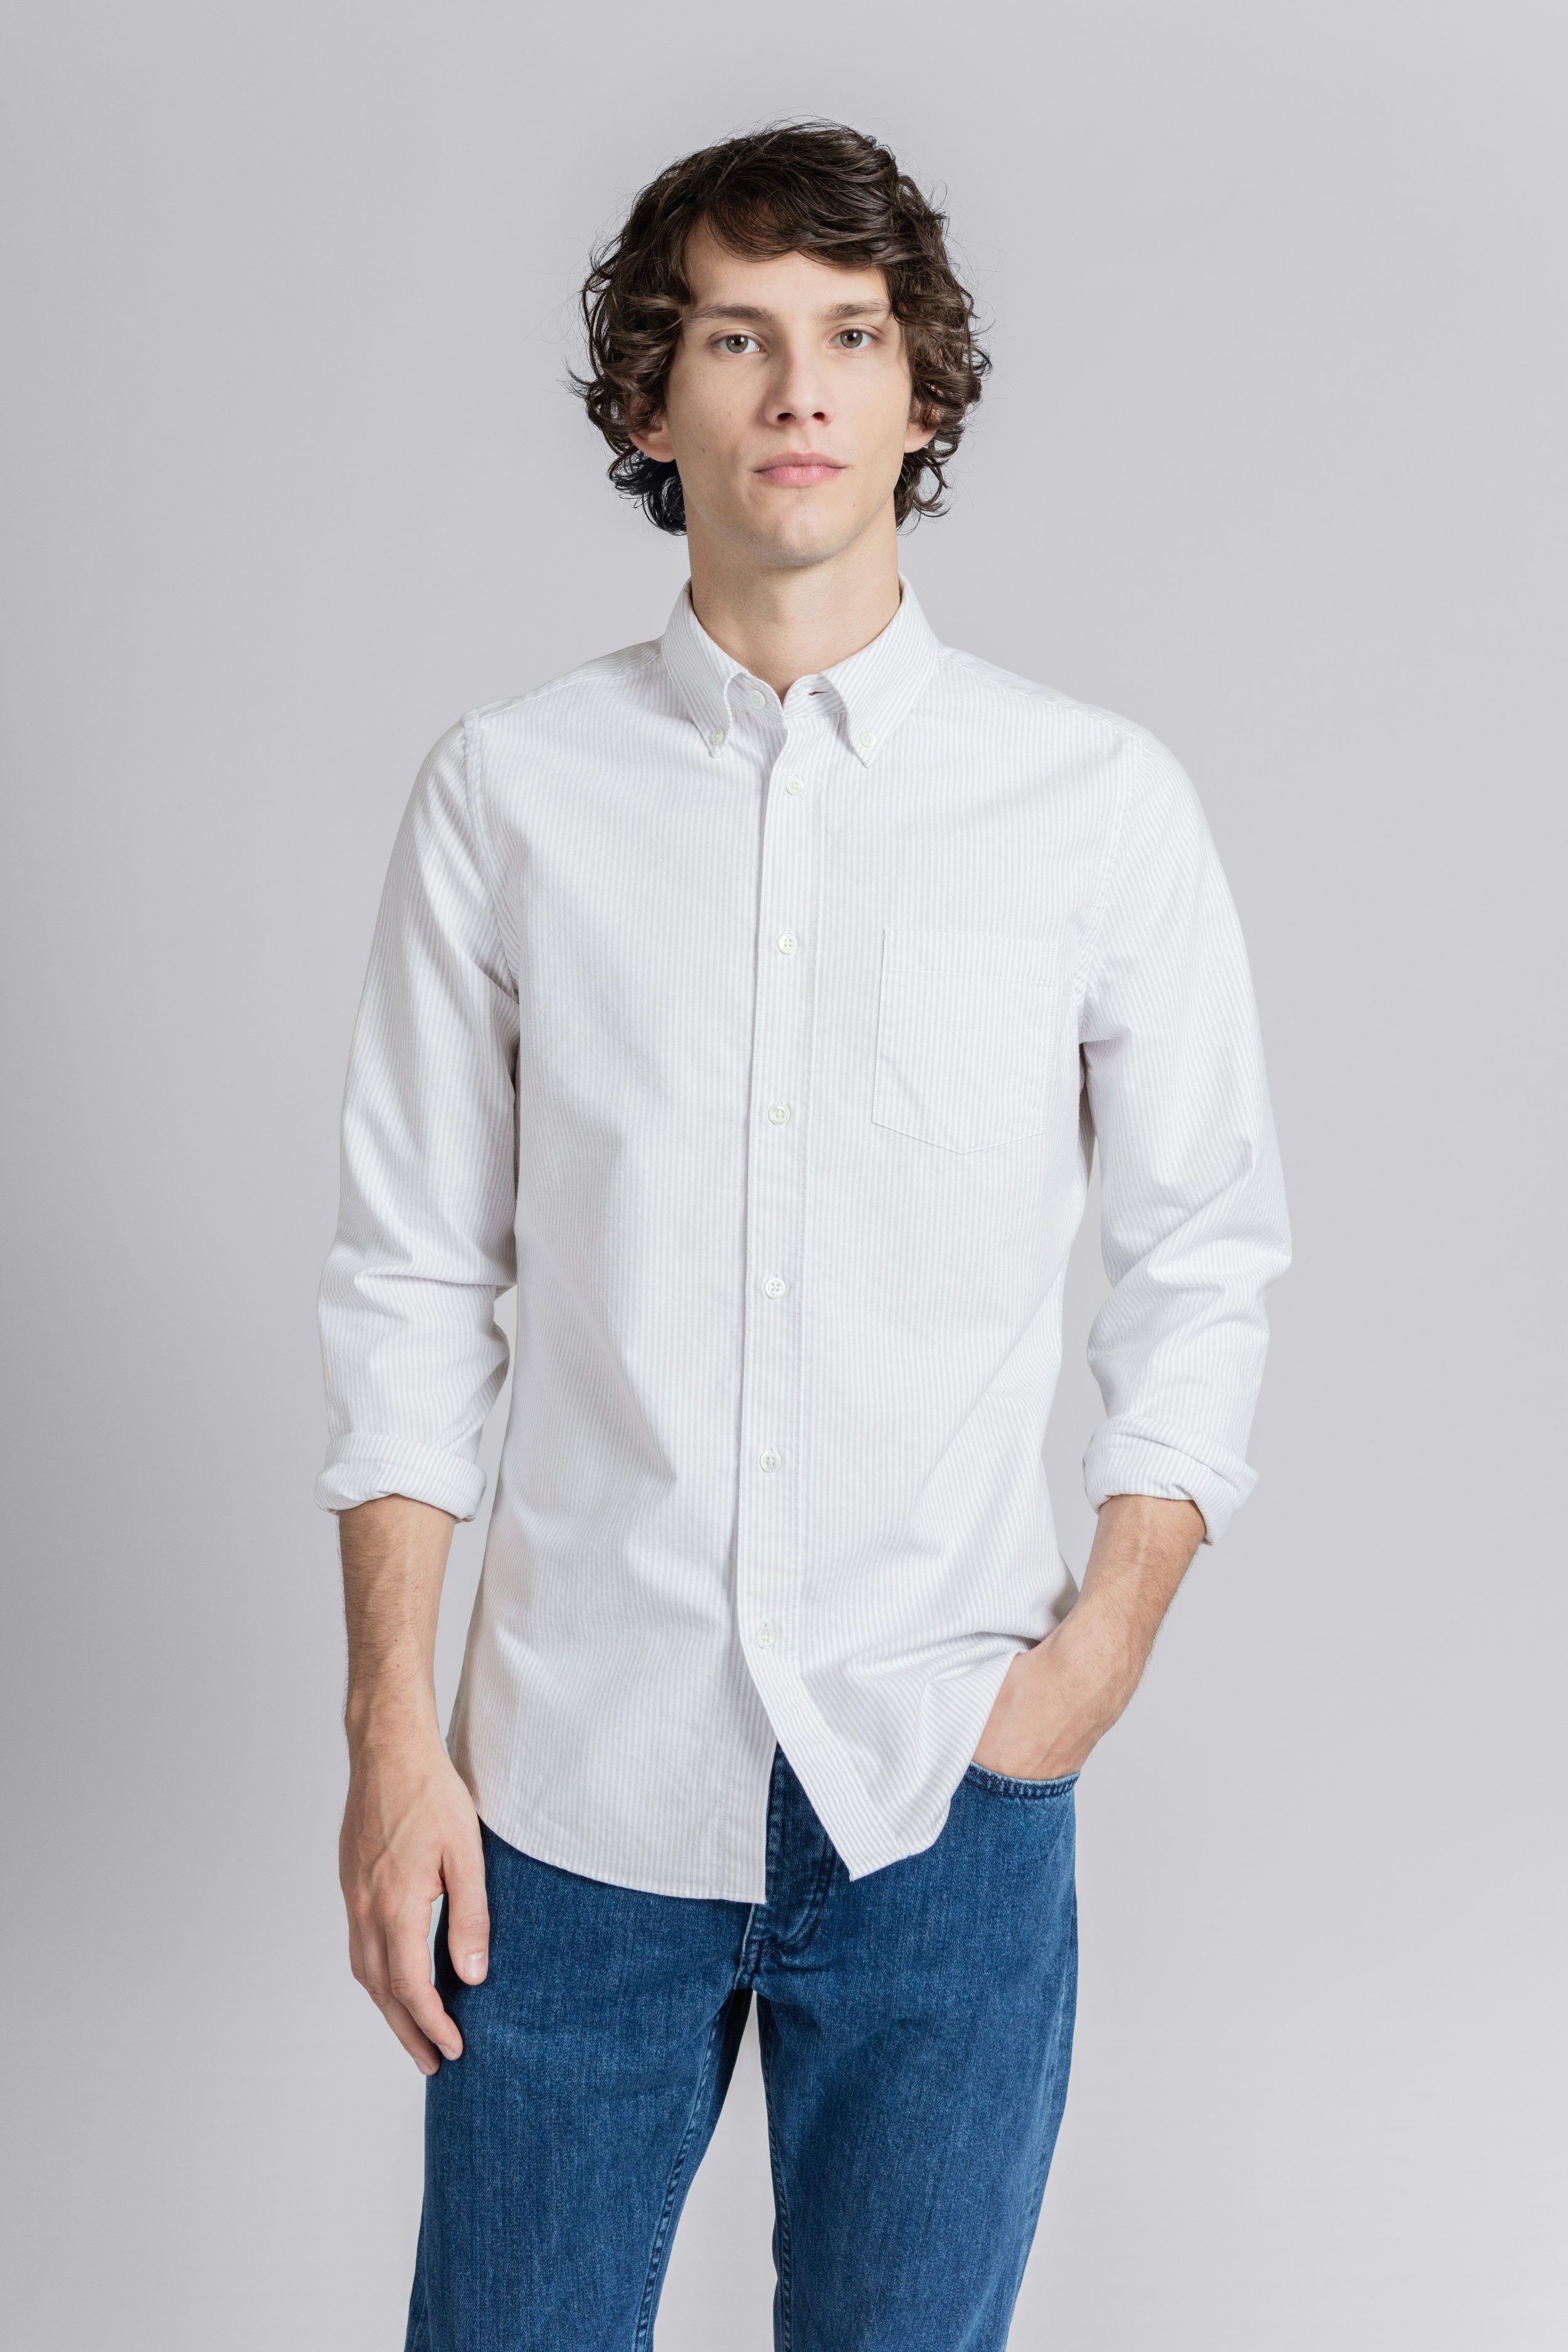 Asket The Oxford Shirt £80 available in other colours.